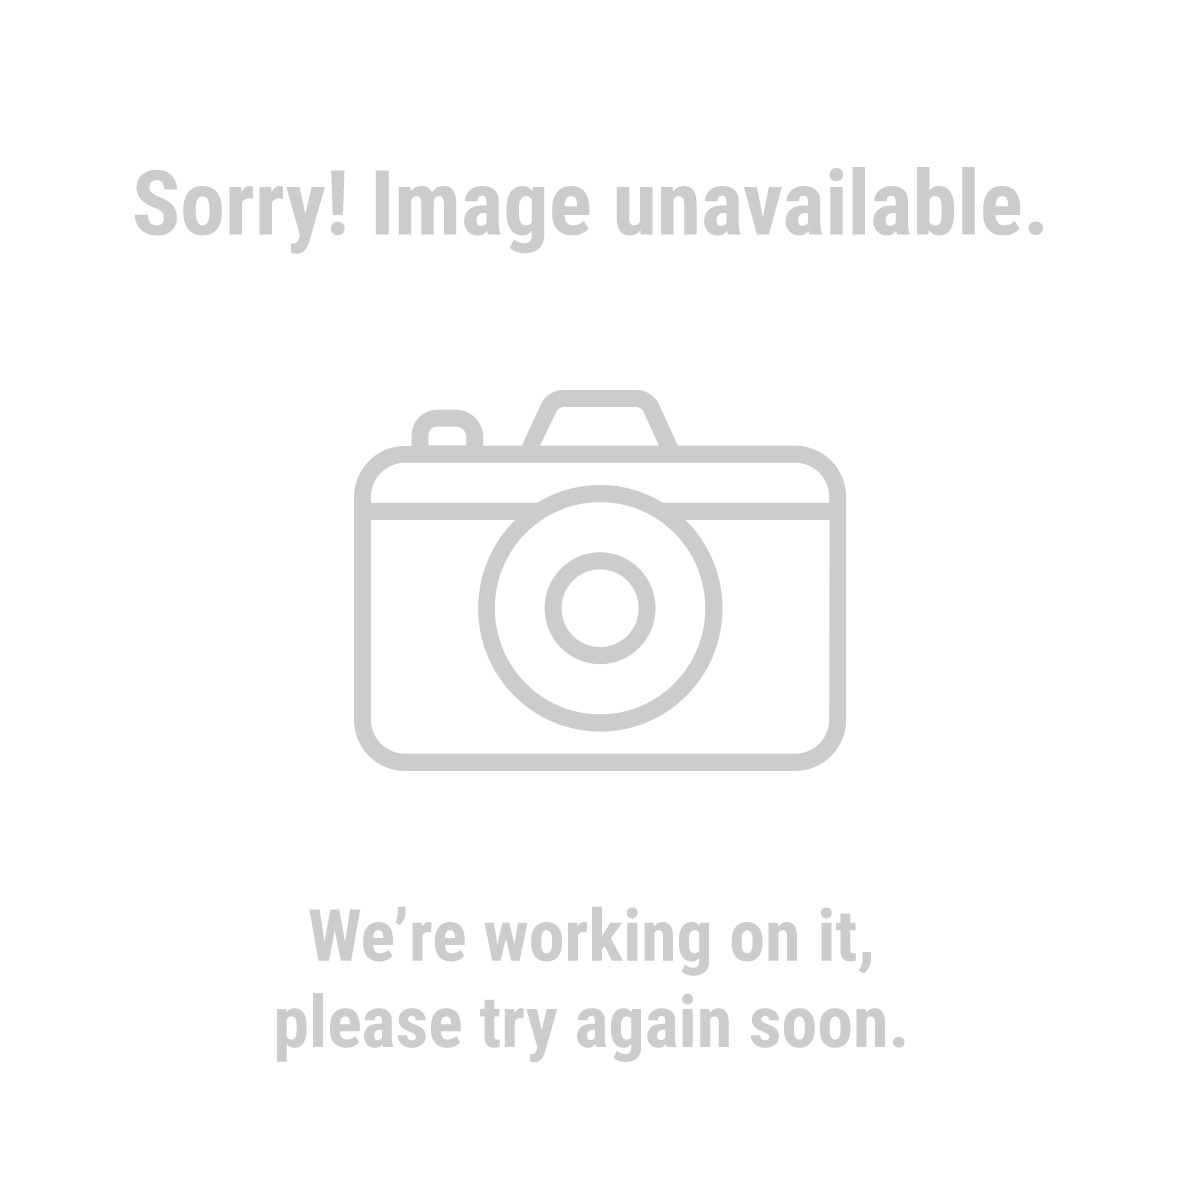 HFT 60268 50 ft. x 14 Gauge Green Outdoor Extension Cord